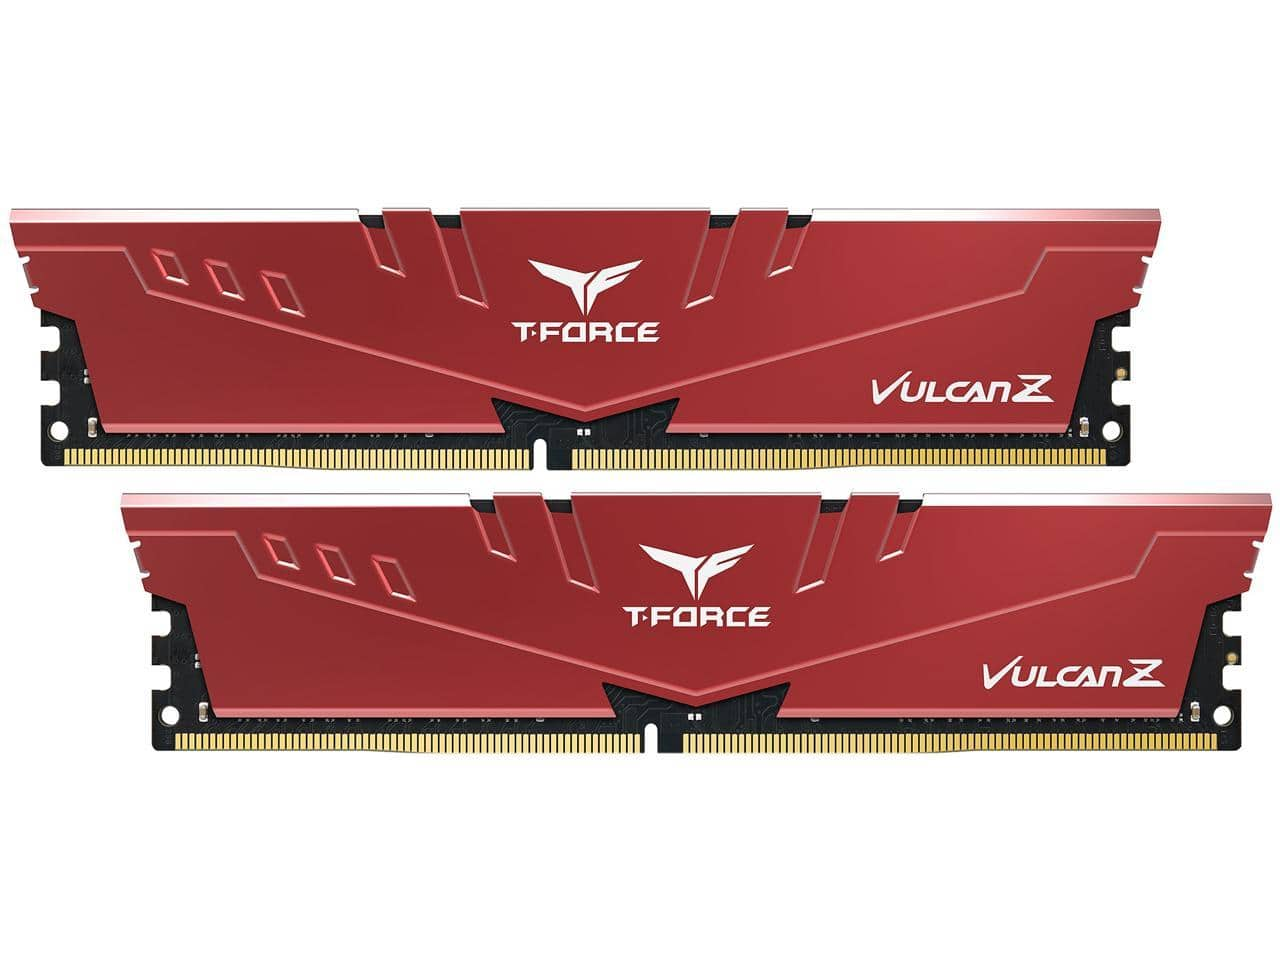 32GB (2 x 16GB) Team T-Force Vulcan Z DDR4 3200 Desktop Memory $91 + Free Shipping